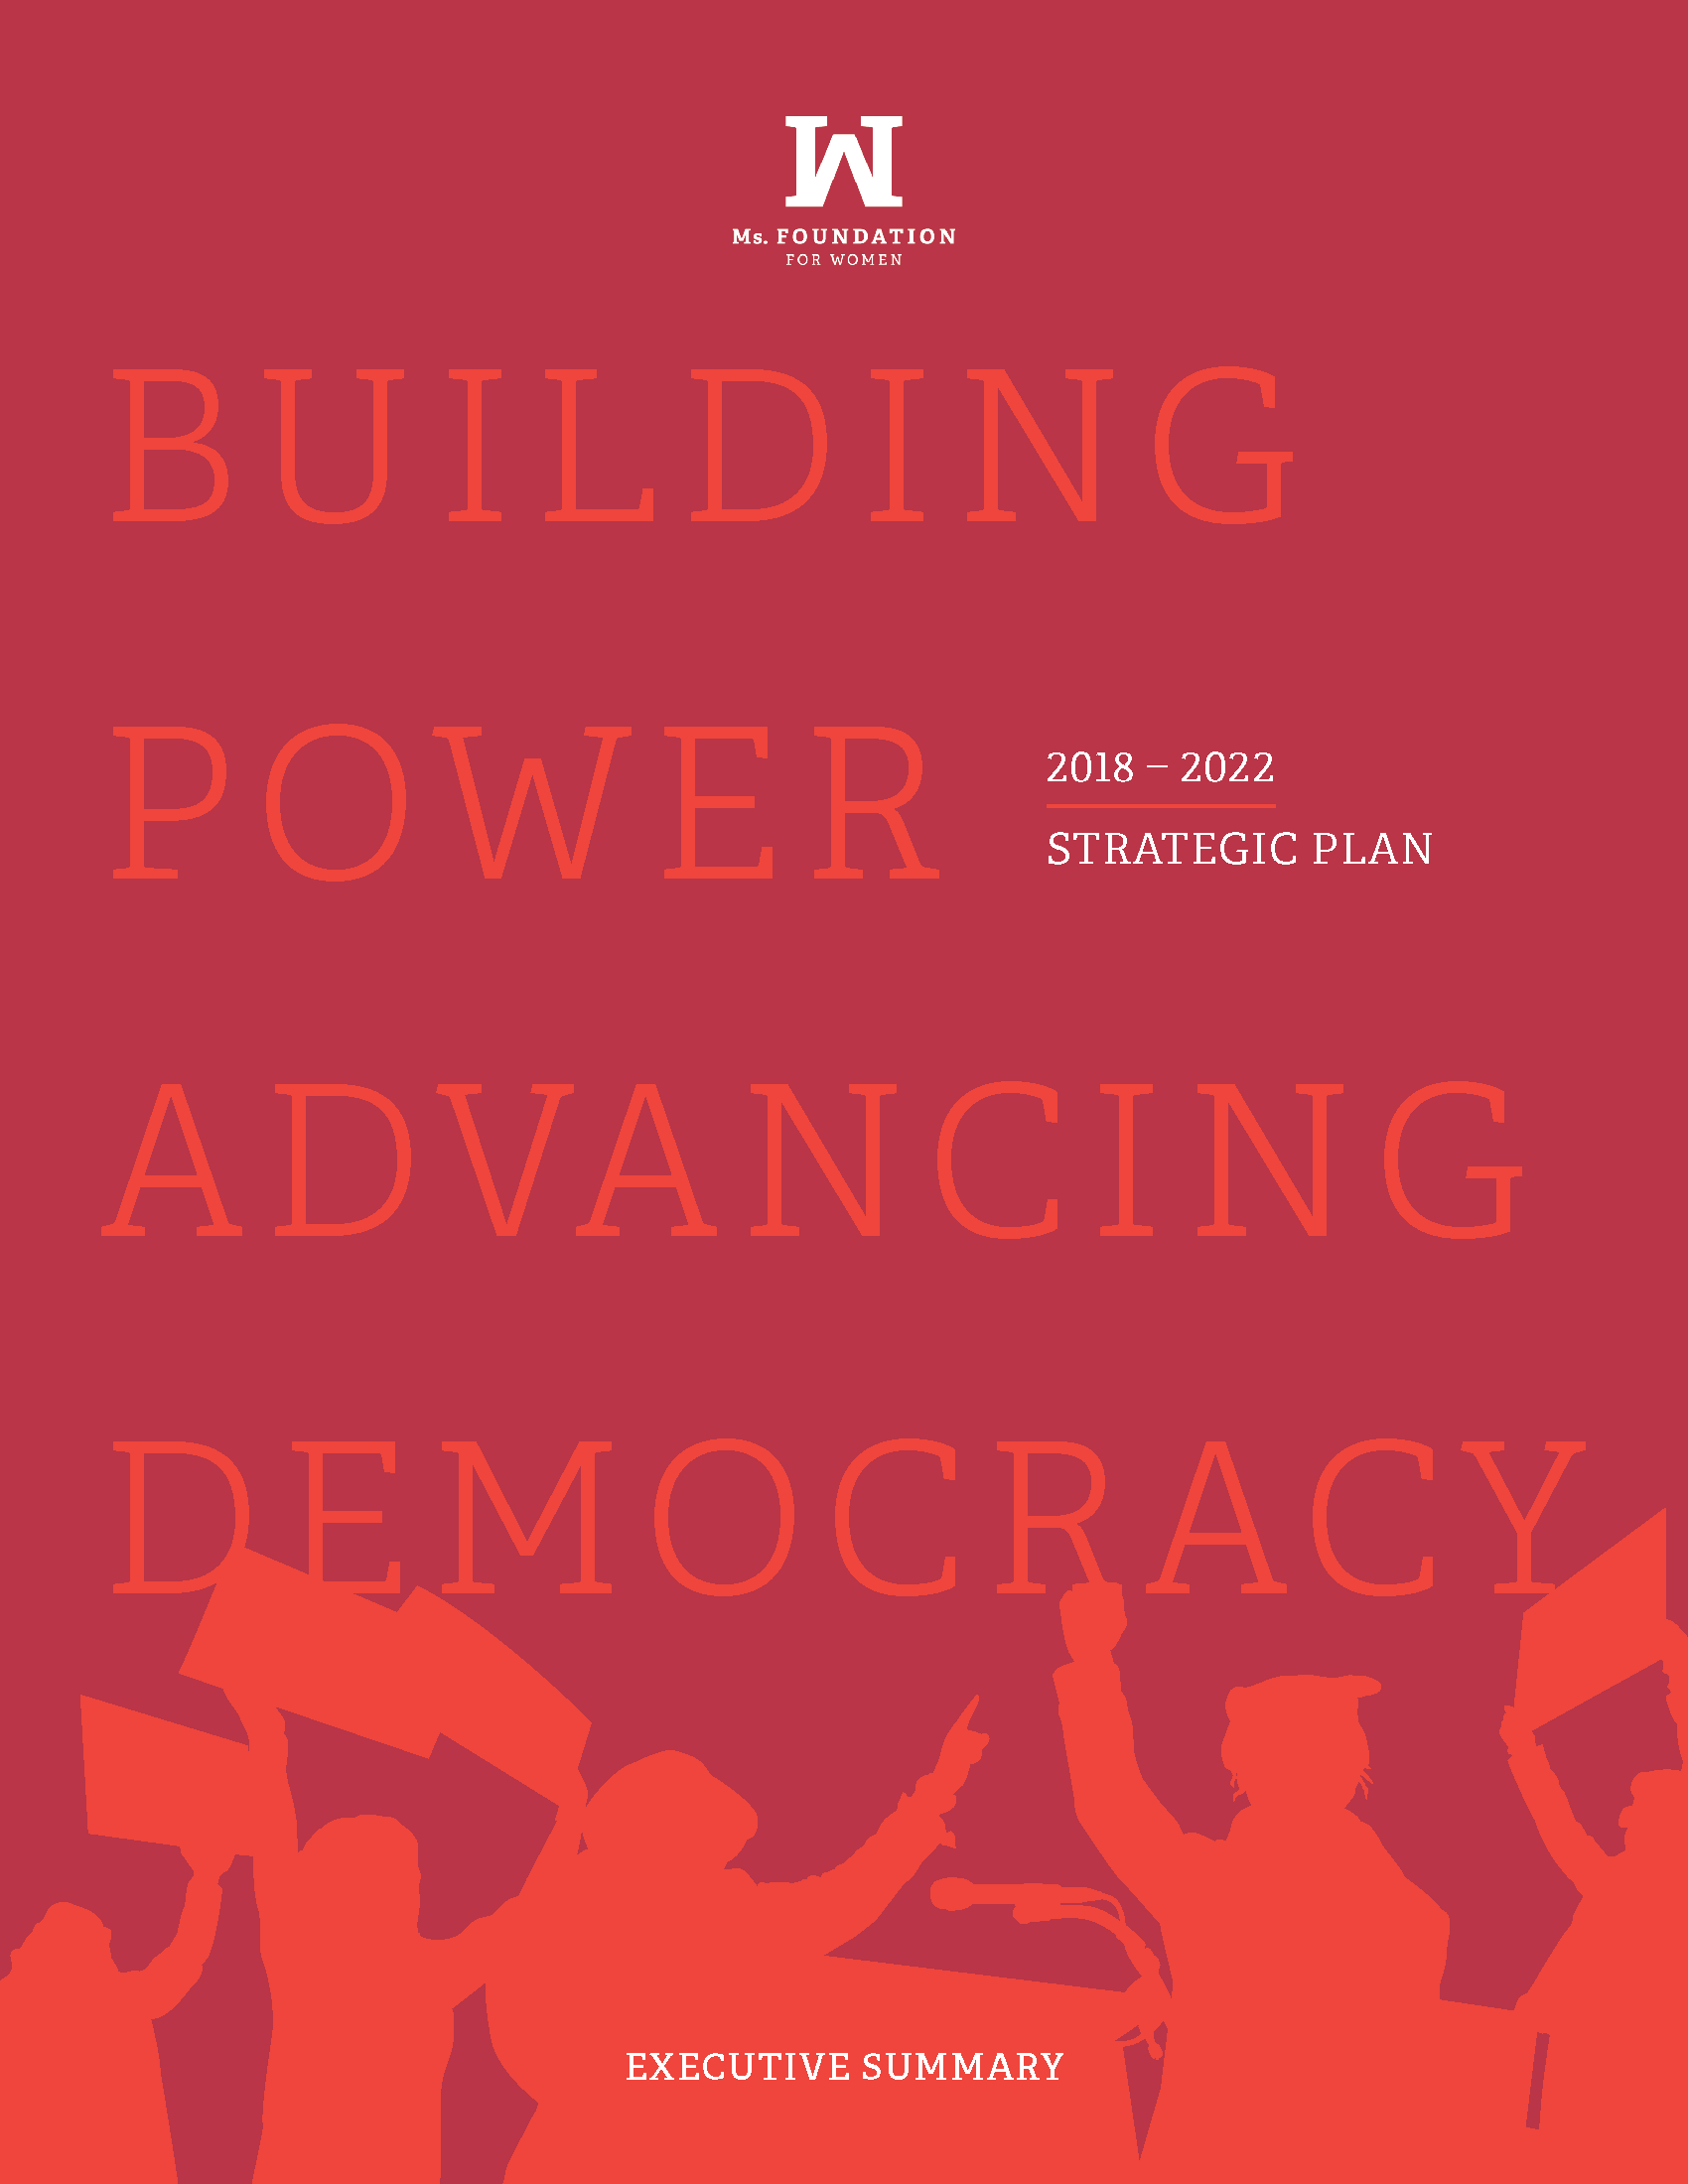 Building Power, Advancing Democracy: Strategic Plan 2018-2022